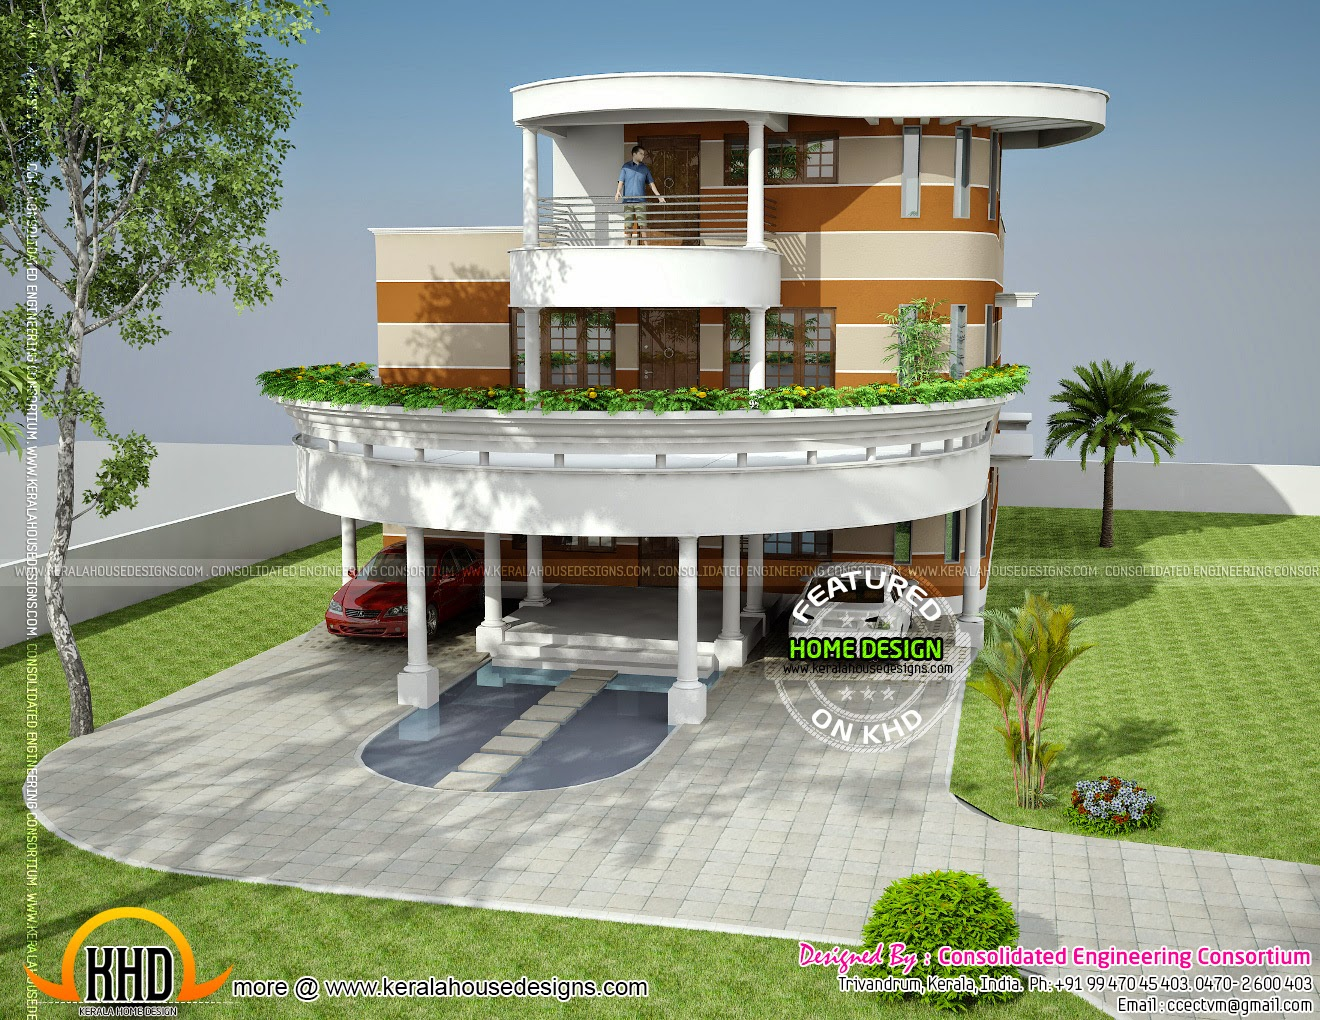 Unique house plan in kerala kerala home design and floor plans - Unique house design ...